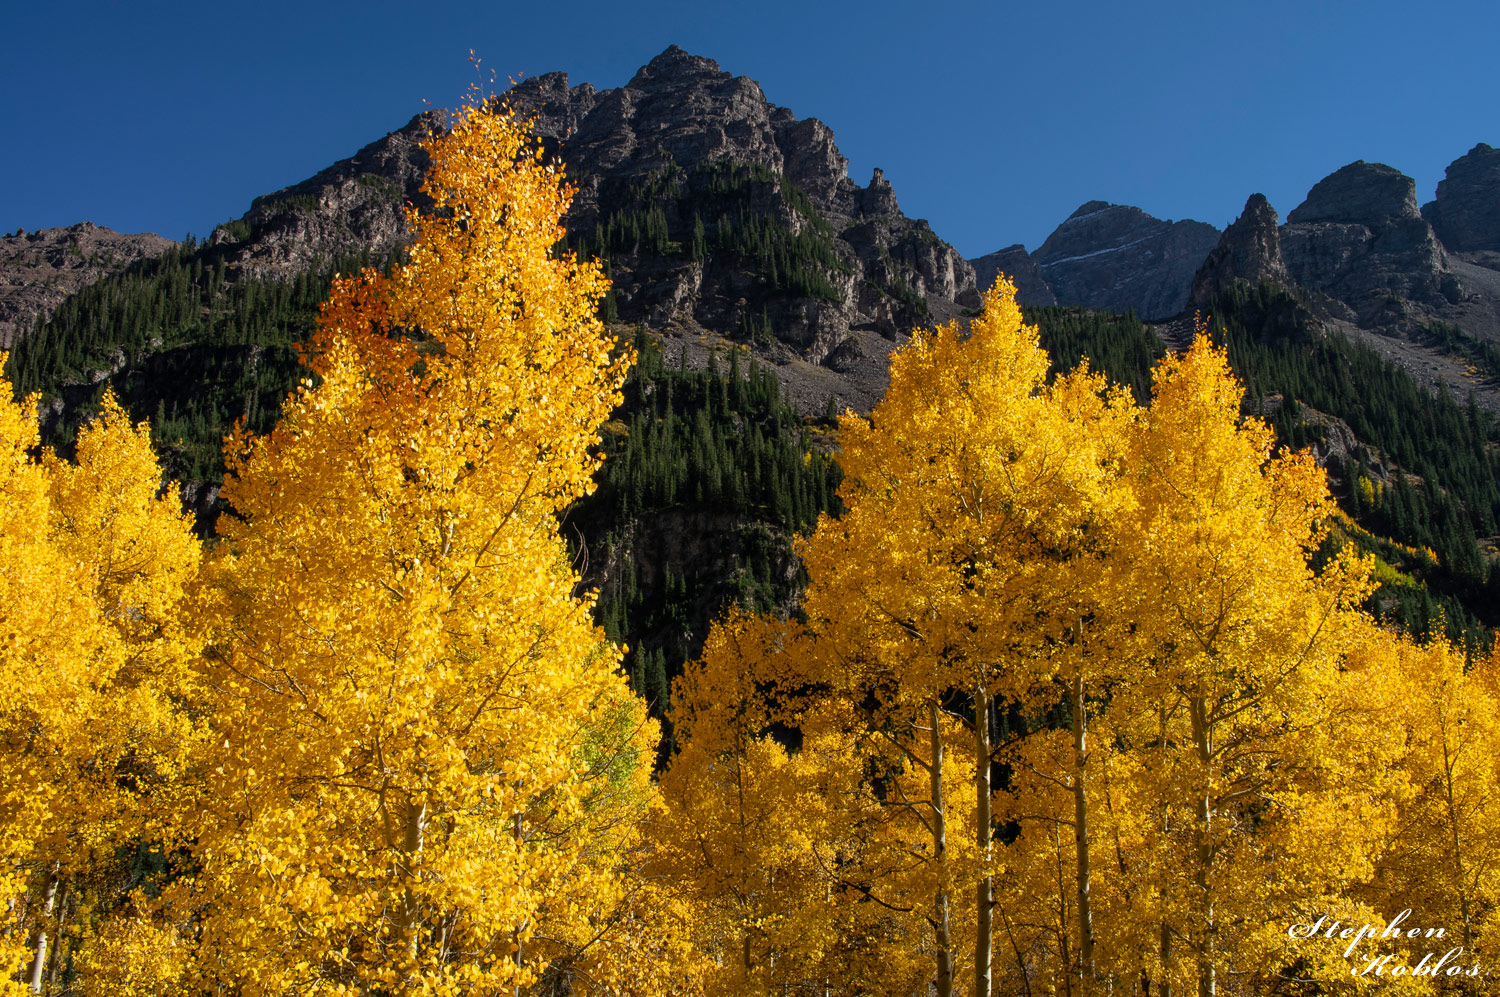 Aspens below Pyramid Peak. Pyramid is in the background.Limited Edition of 100